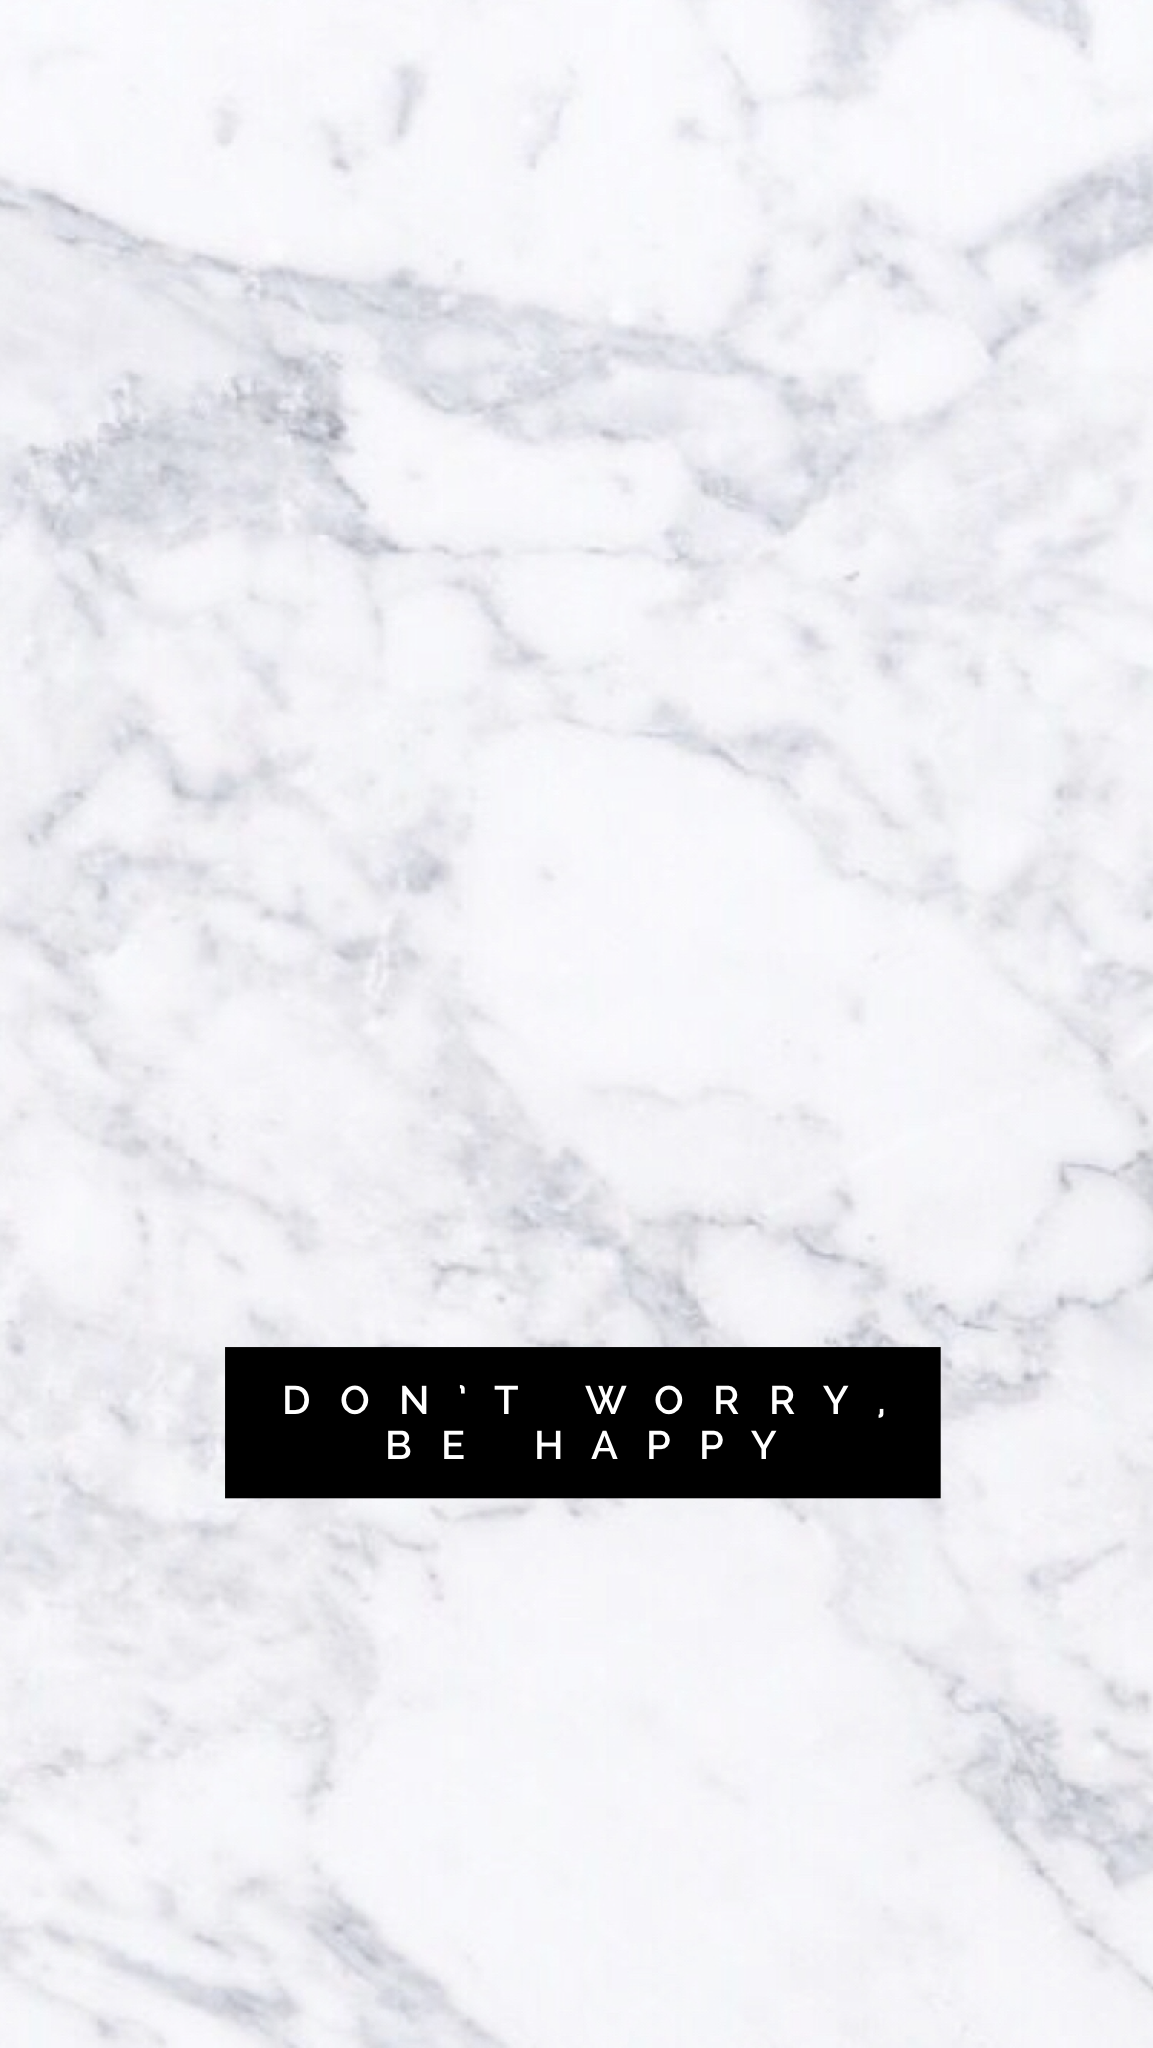 Wallpaper, wall, background, marble, white, minimal, quote